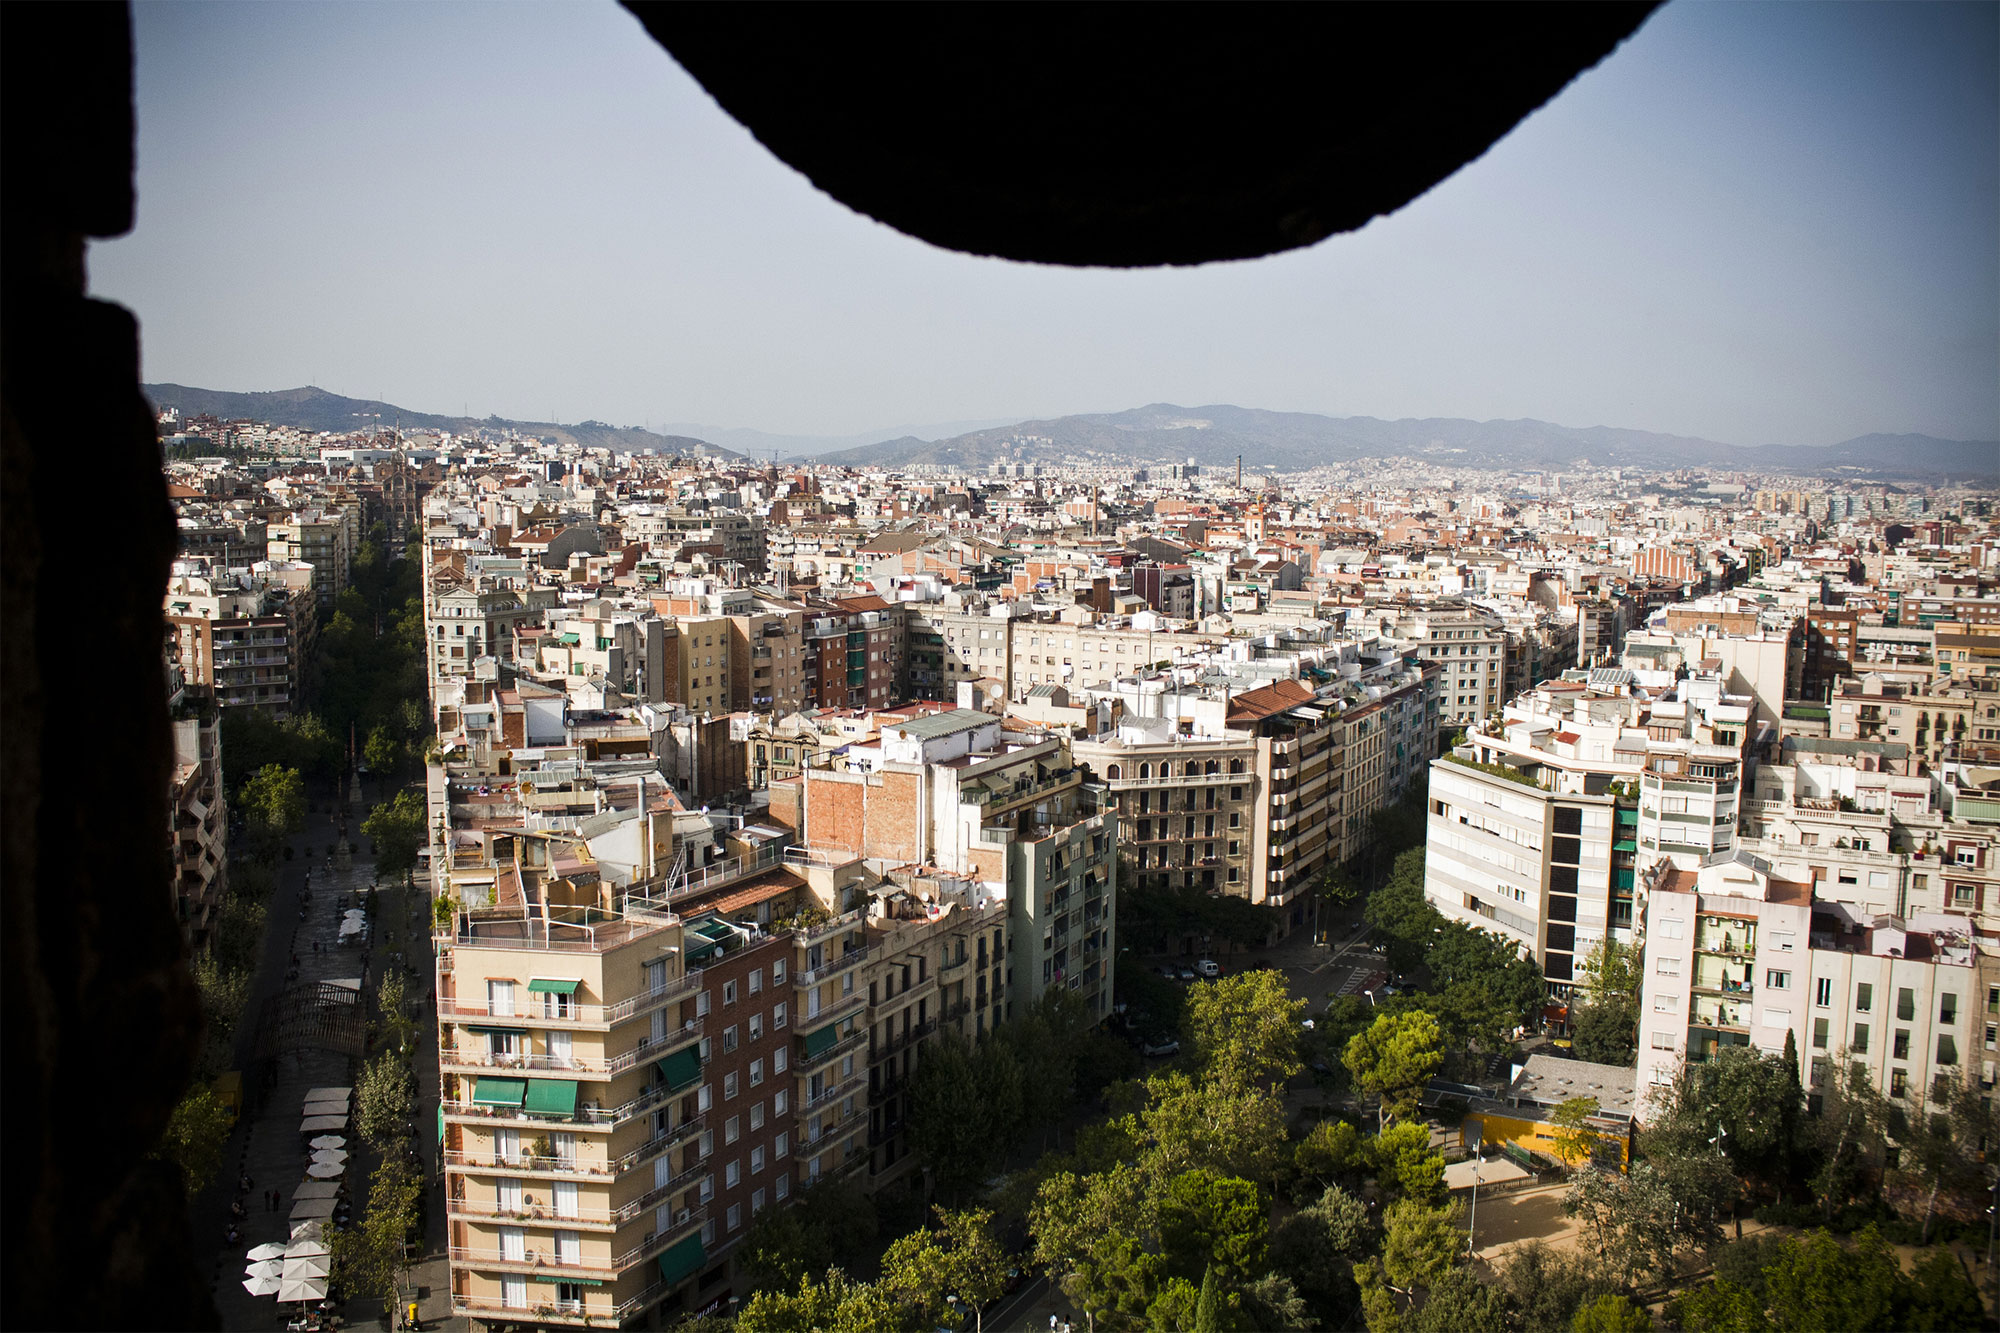 Panoramic view of Barcelona from one of the towers of La Sagrada Familia